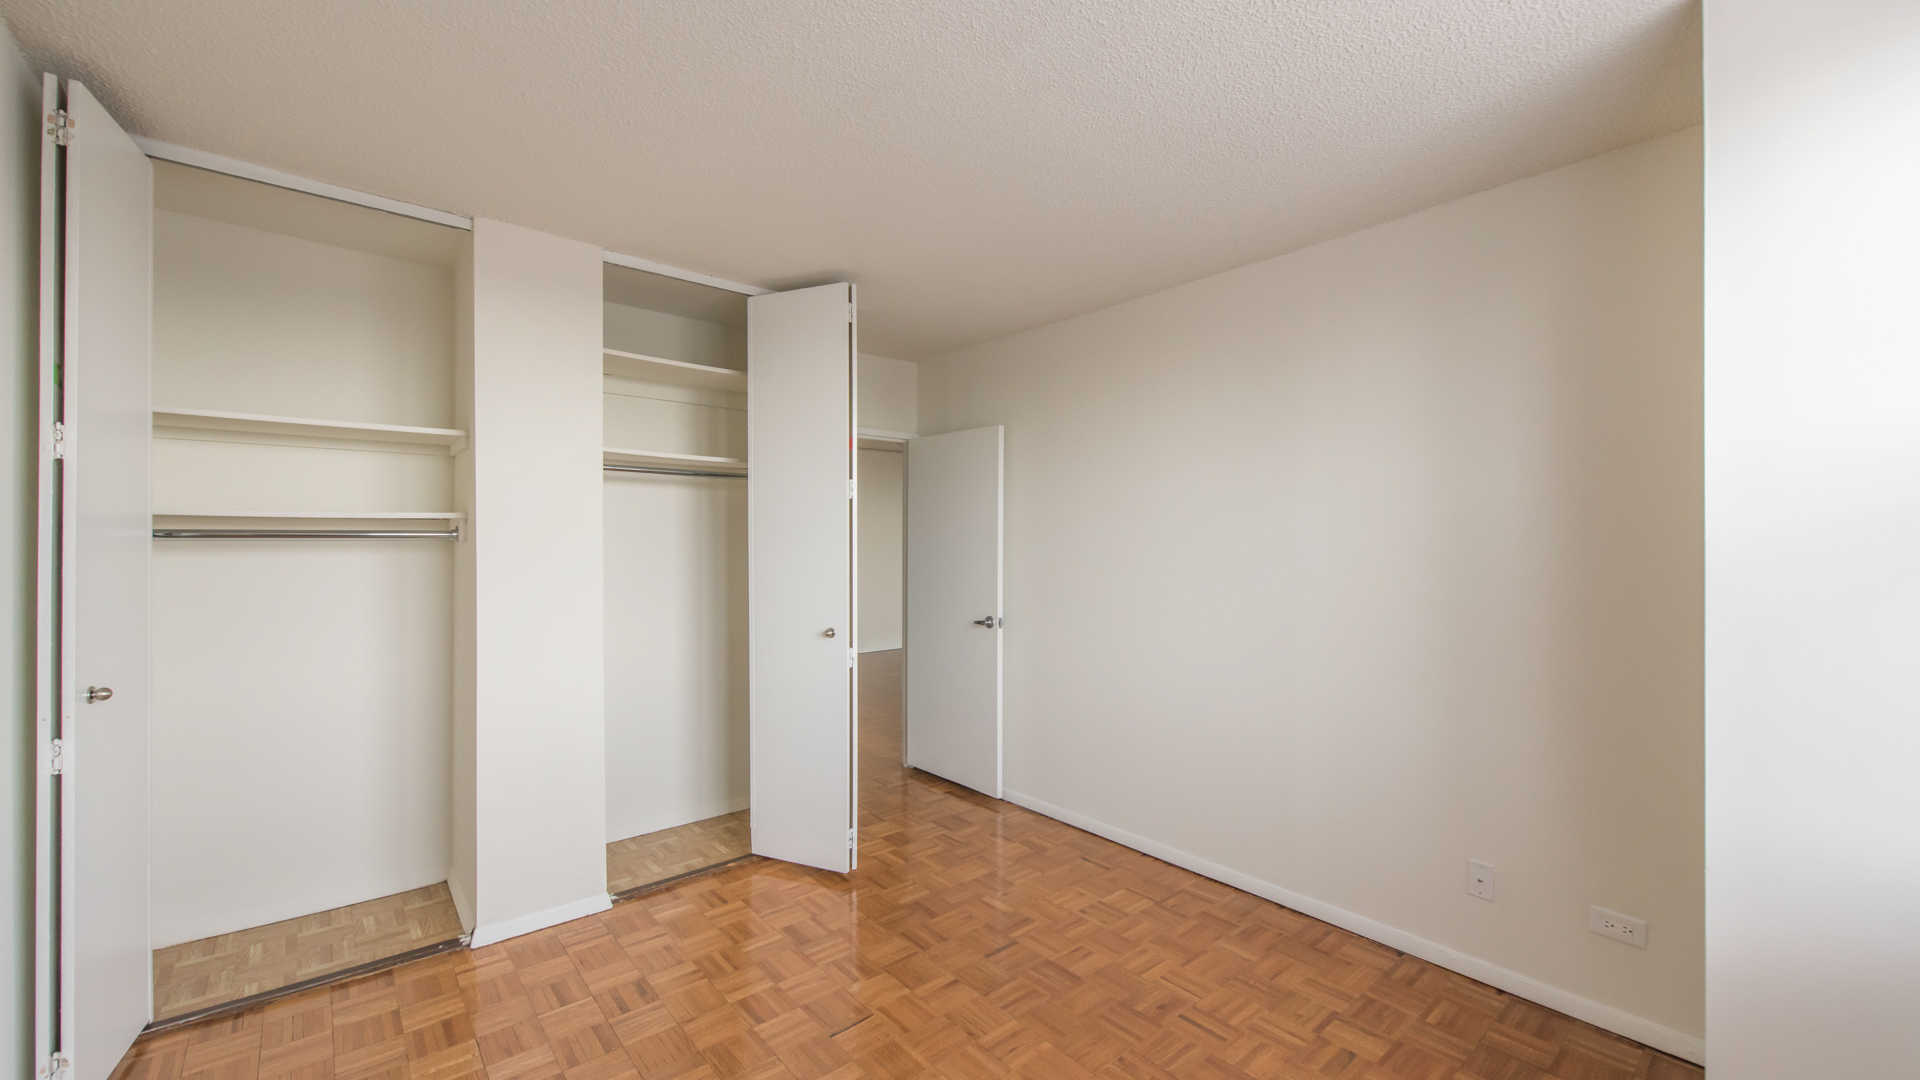 Bedroom with Full-Sized Closet